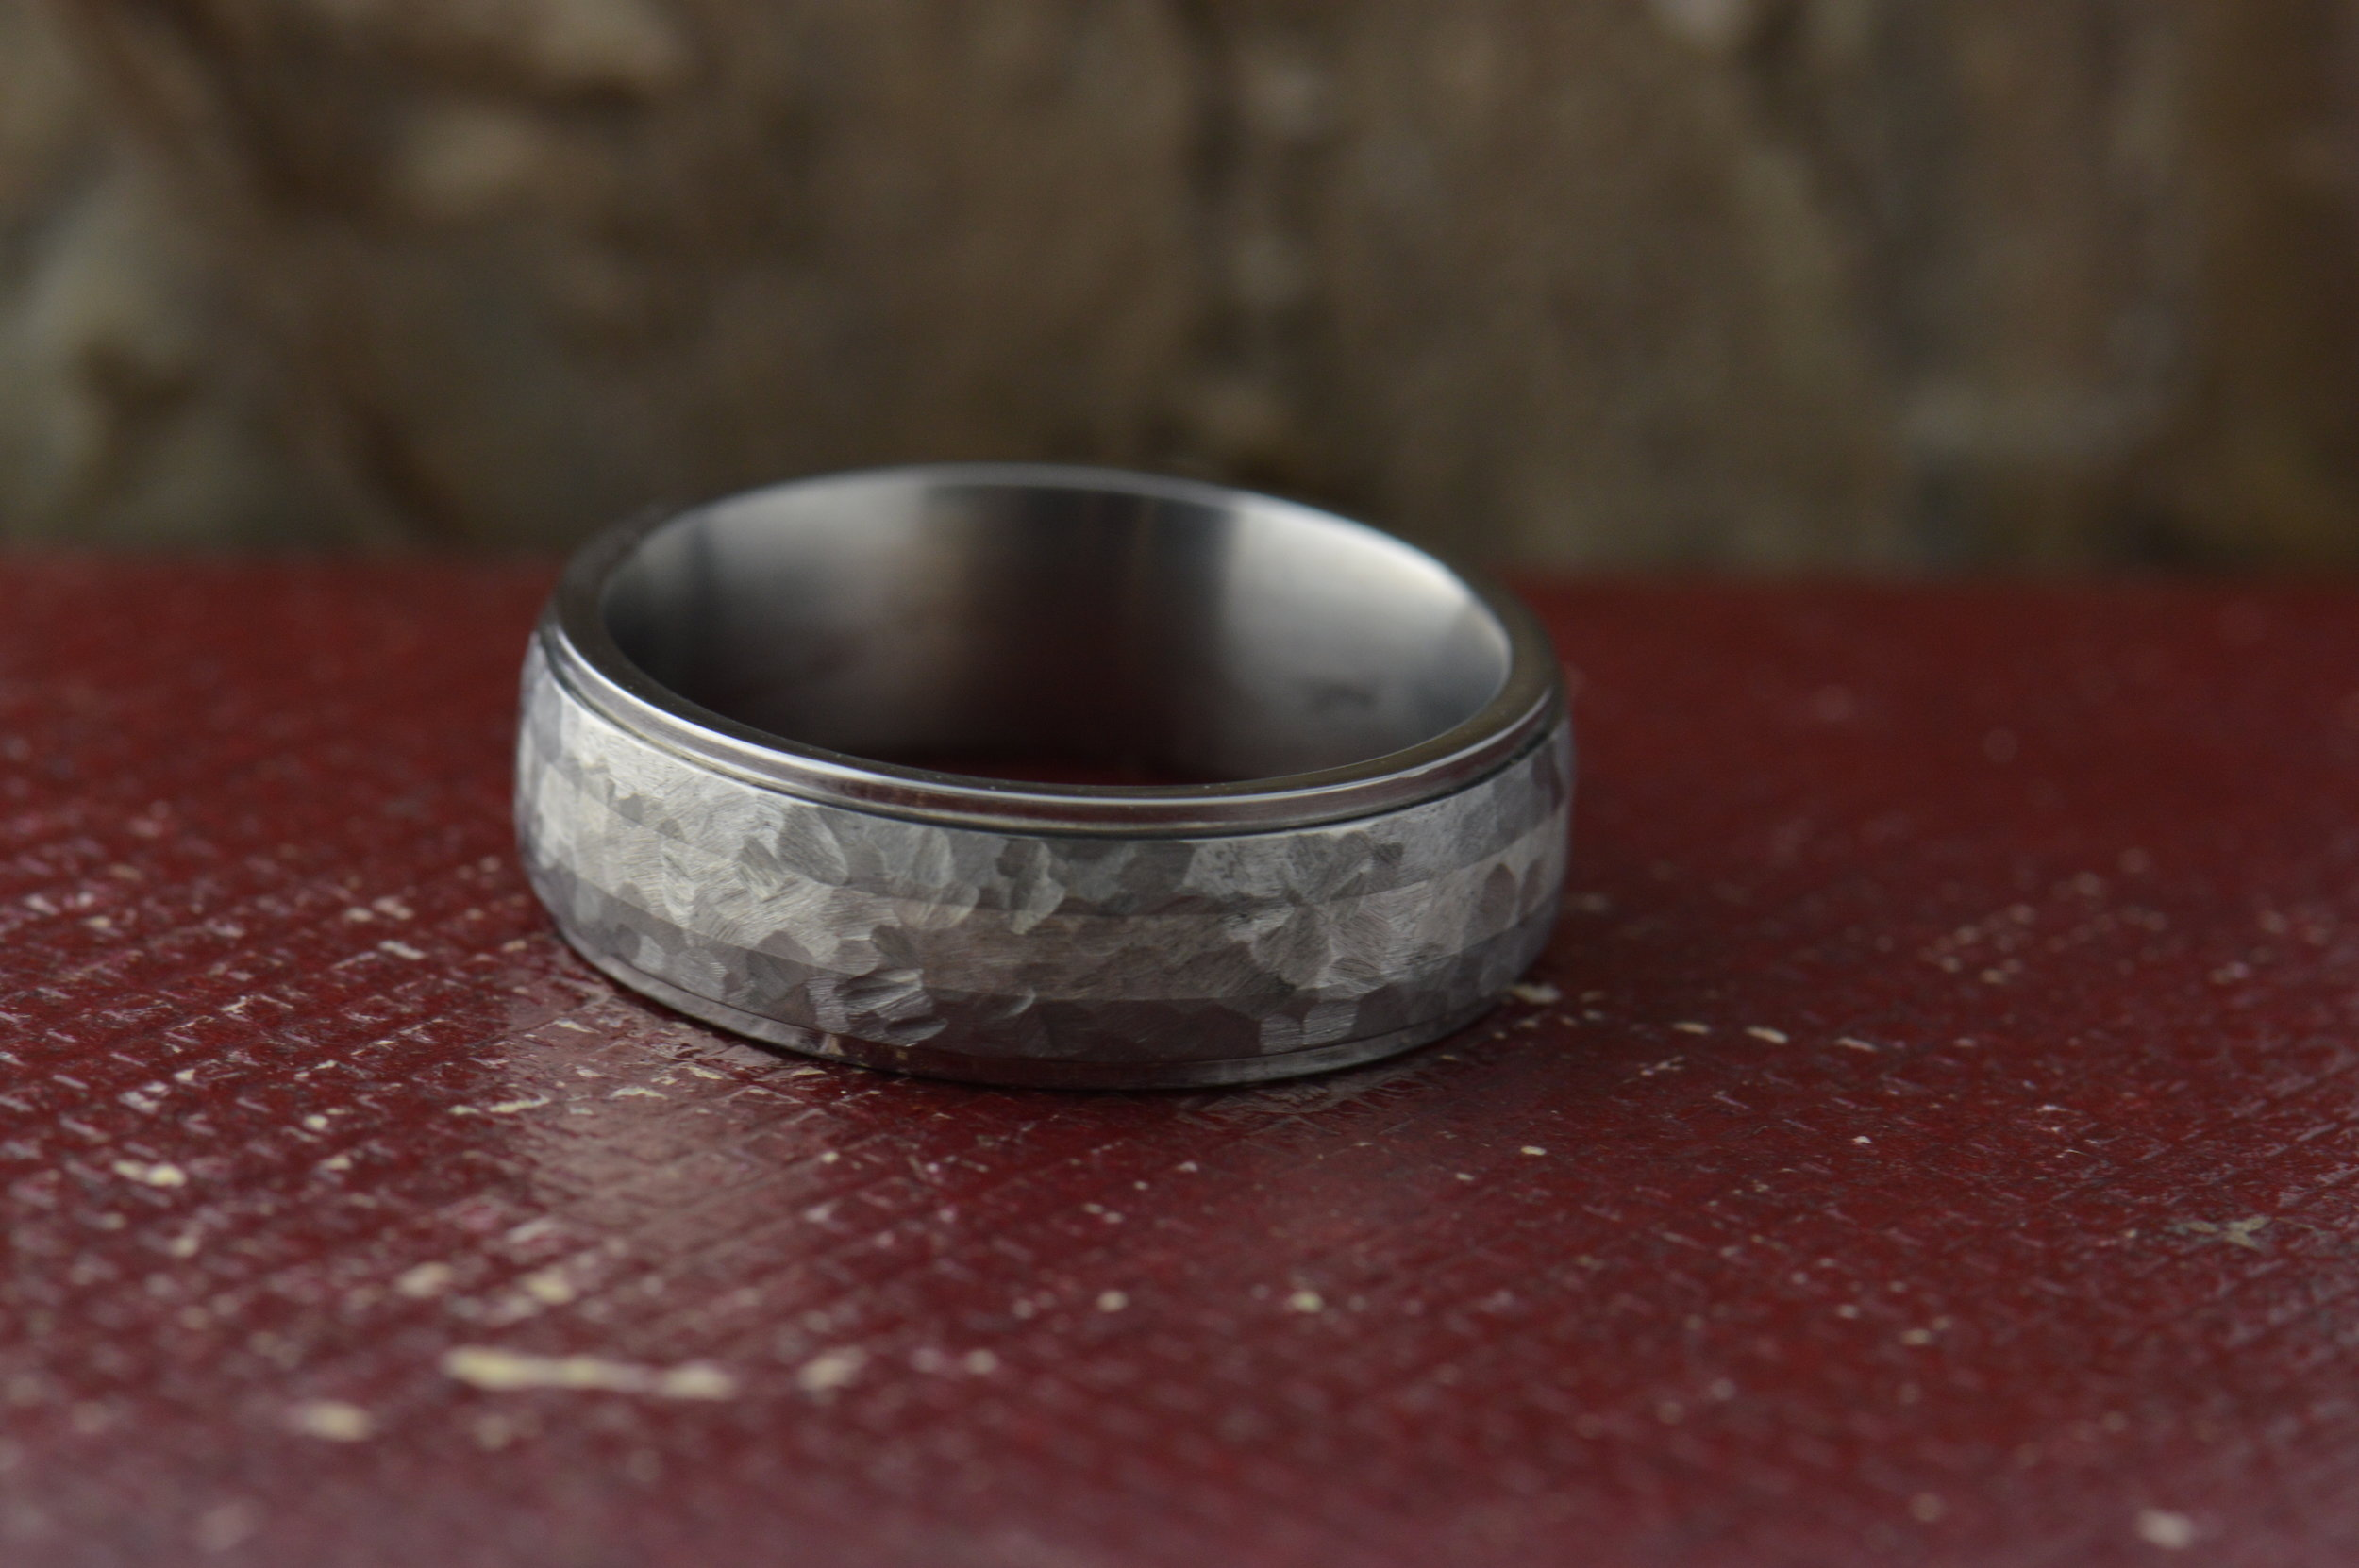 darvier-tight-hammer-finish-sterling-inlay-titanium-ring-step-profile.JPG